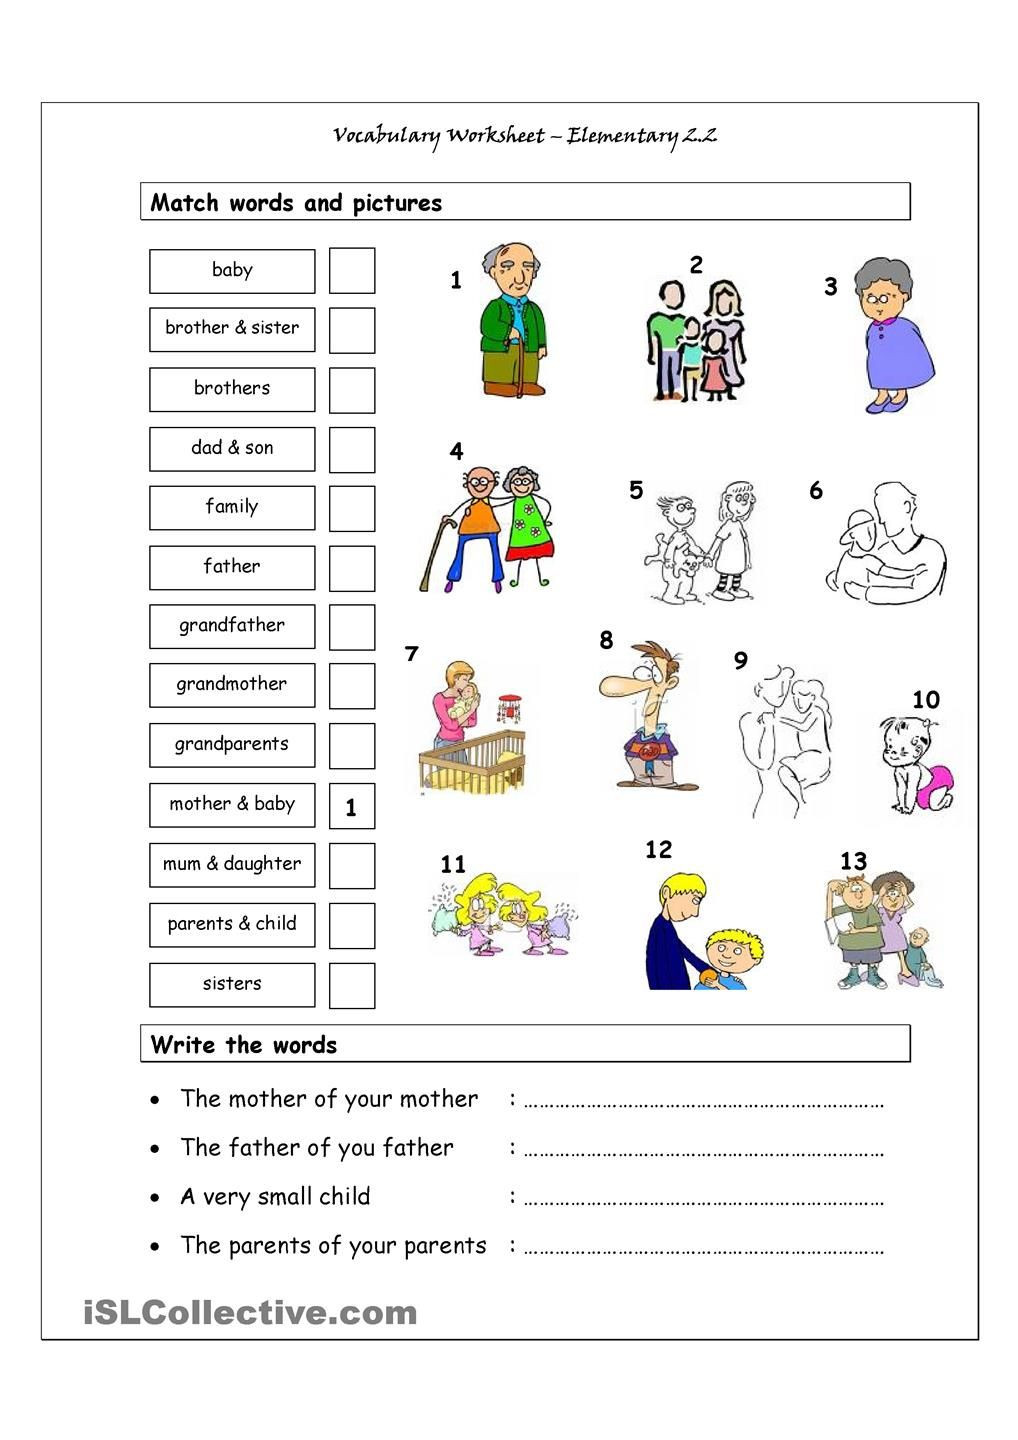 Vocabulary Worksheets for 1st Graders Vocabulary Matching Worksheet Elementary 2 2 Family